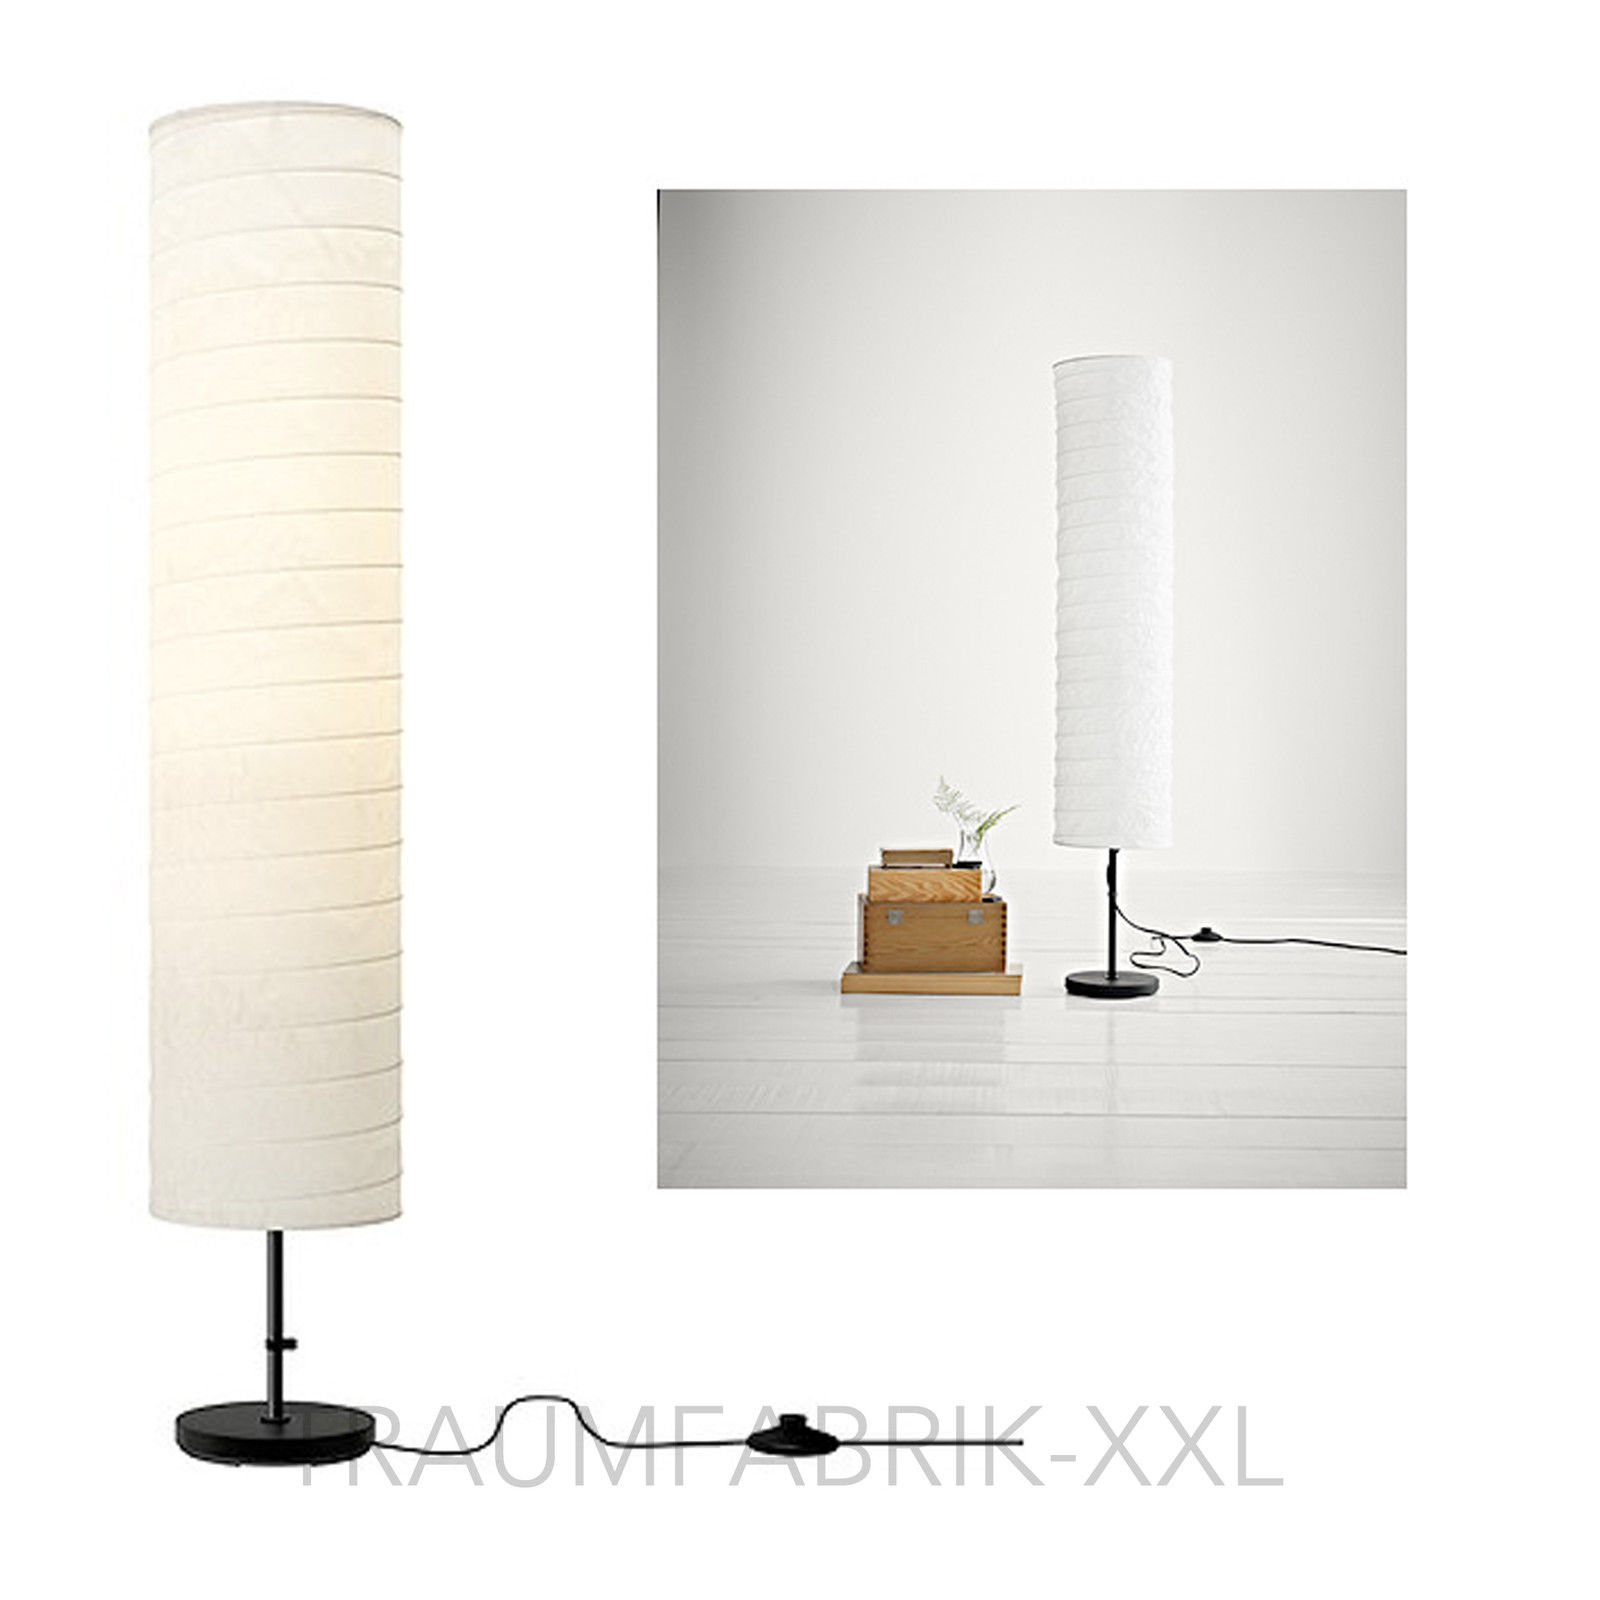 lounge standleuchte 117 cm lampe leuchte weiss stehlampe stehleuchte raumdeko traumfabrik xxl. Black Bedroom Furniture Sets. Home Design Ideas